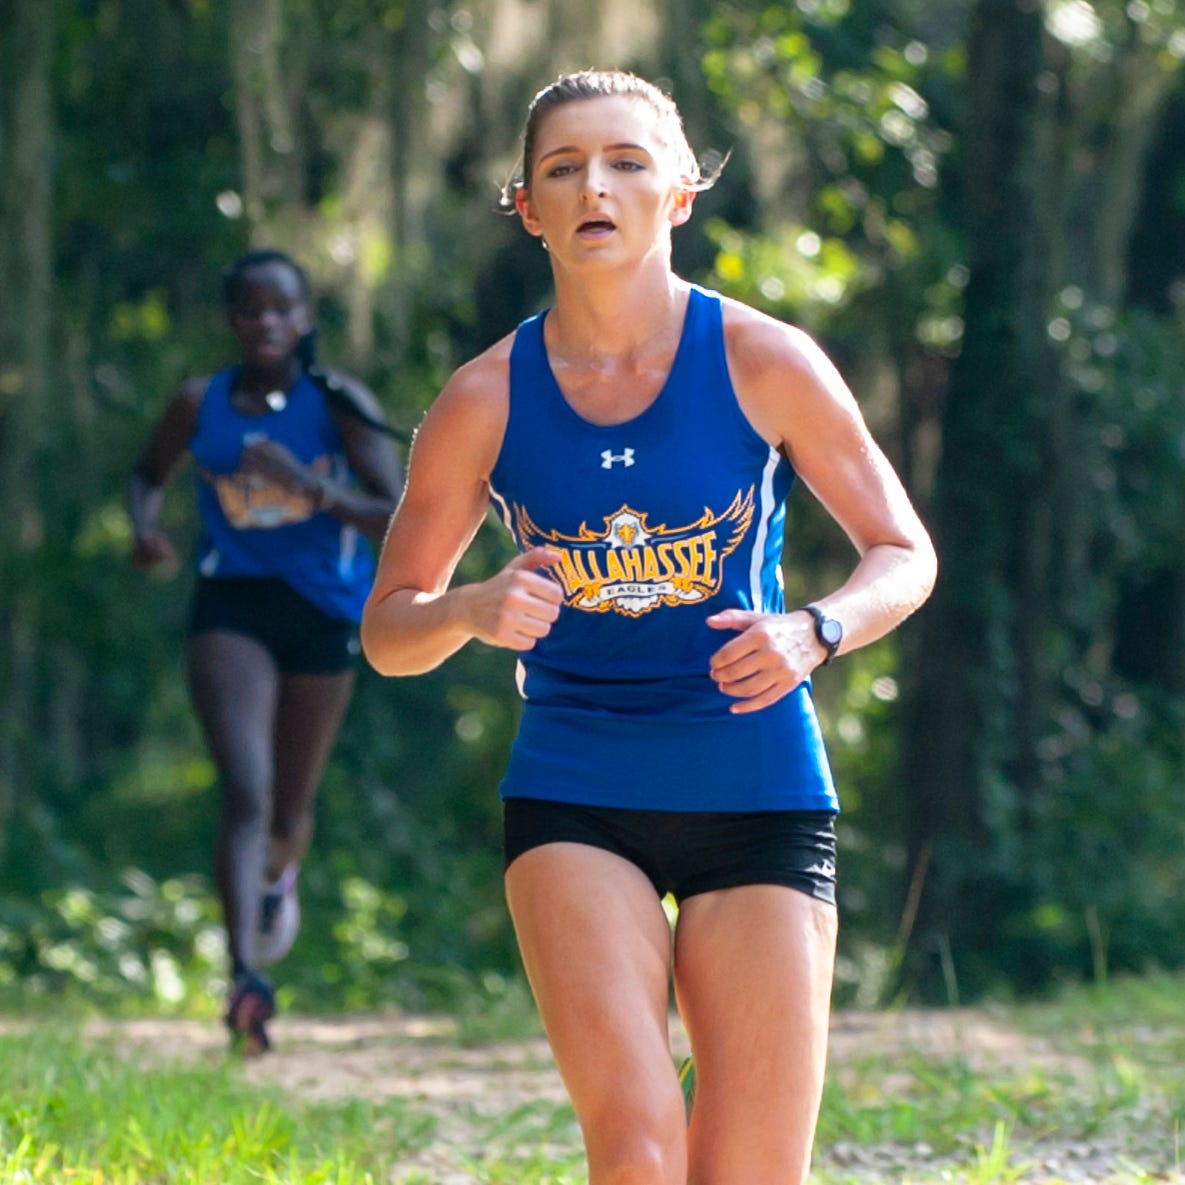 Tallahassee Community College cross country runner Rachel Williams is a native of Blountstown. Calhoun County was devastated by Hurricane Michael. Running with team is helping her cope with the disaster.